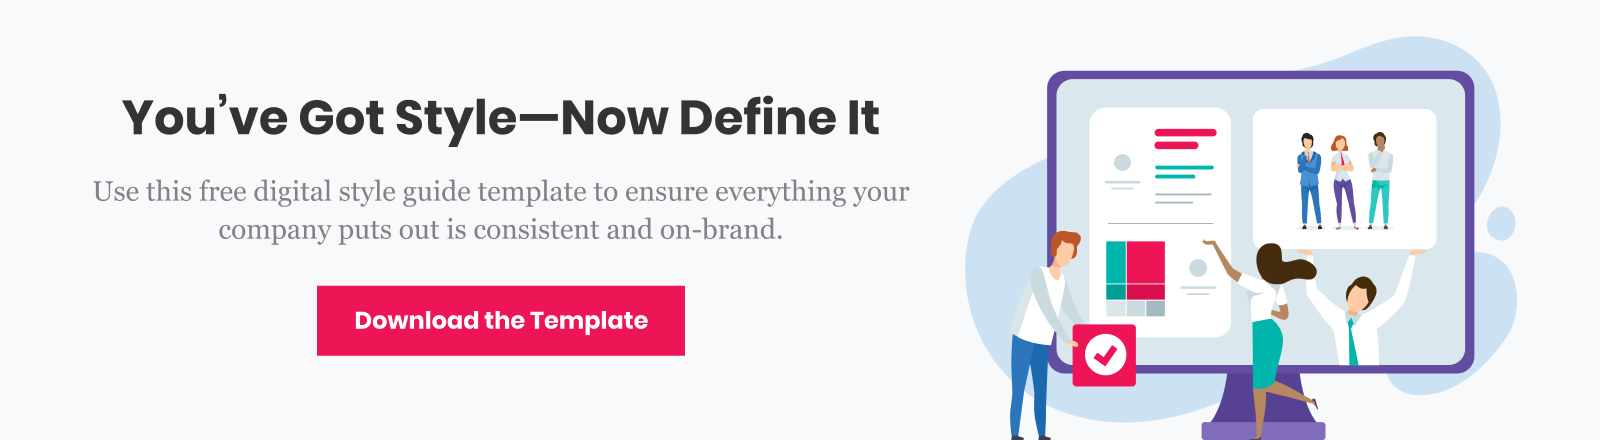 Create your own style guide using our free template